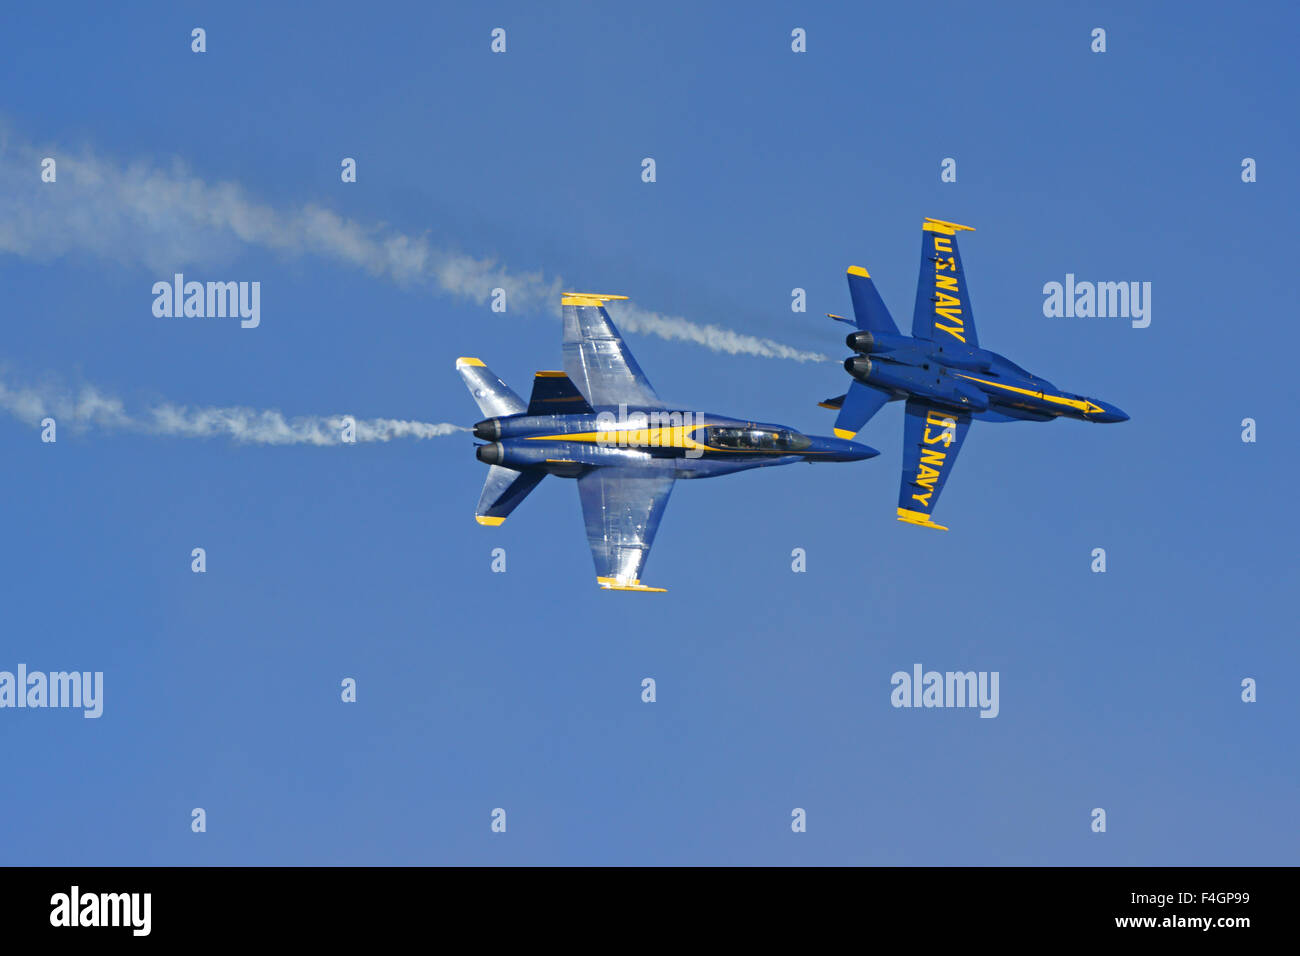 Airplane Blue Angels Navy F-18 Hornet jet fighters flying at 2015 Miramar  Air Show in San Diego, California